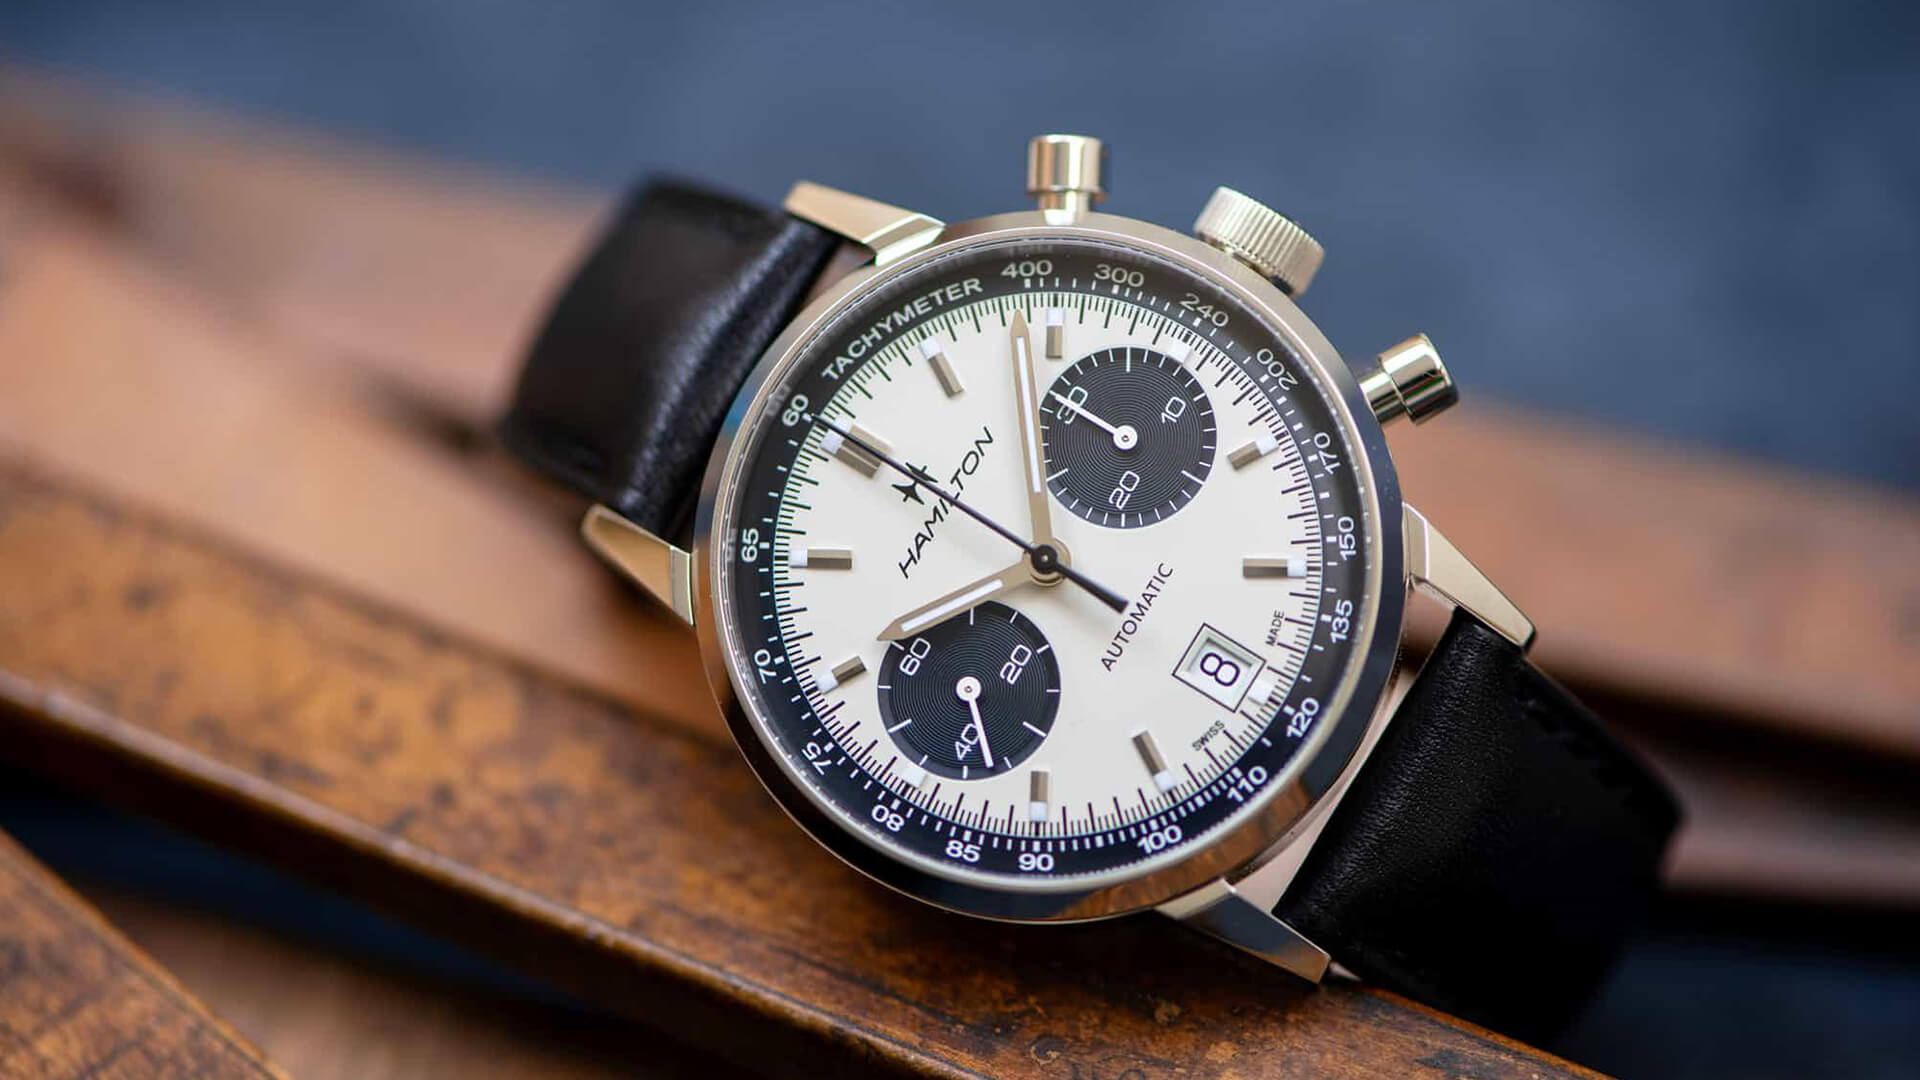 From The Press: Introducing the Hamilton Intra-Matic Auto Chrono